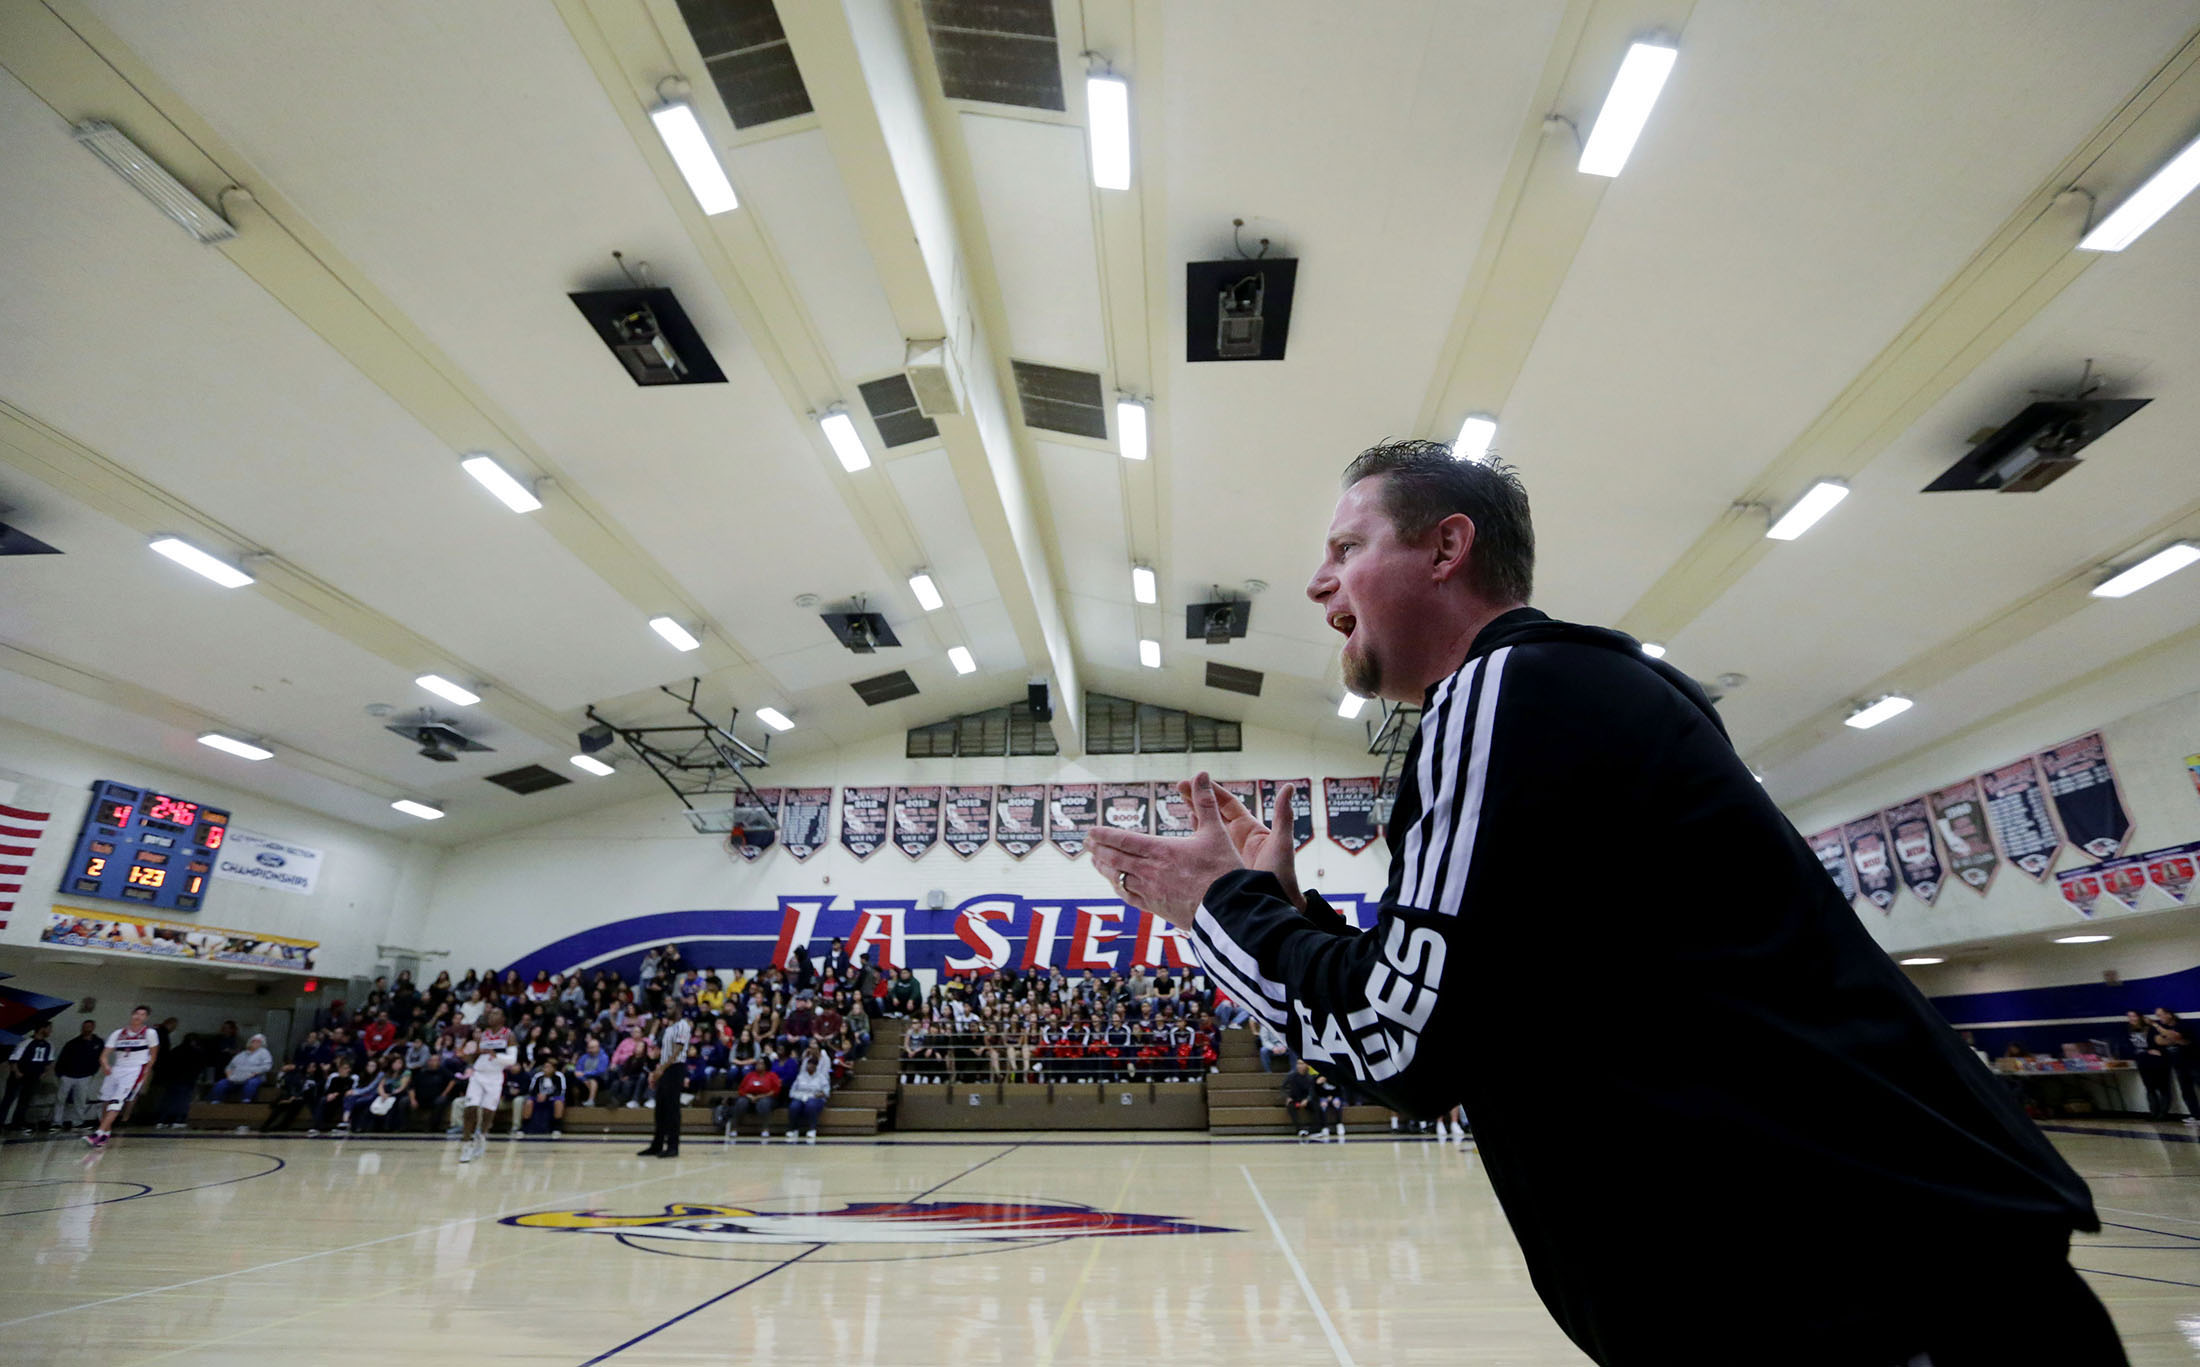 La Sierra boys basketball coach Justin Norman barks out orders to his team center court as he coach the Eagles against Patriot at La Sierra High School in Riverside on Friday, January 11, 2019.